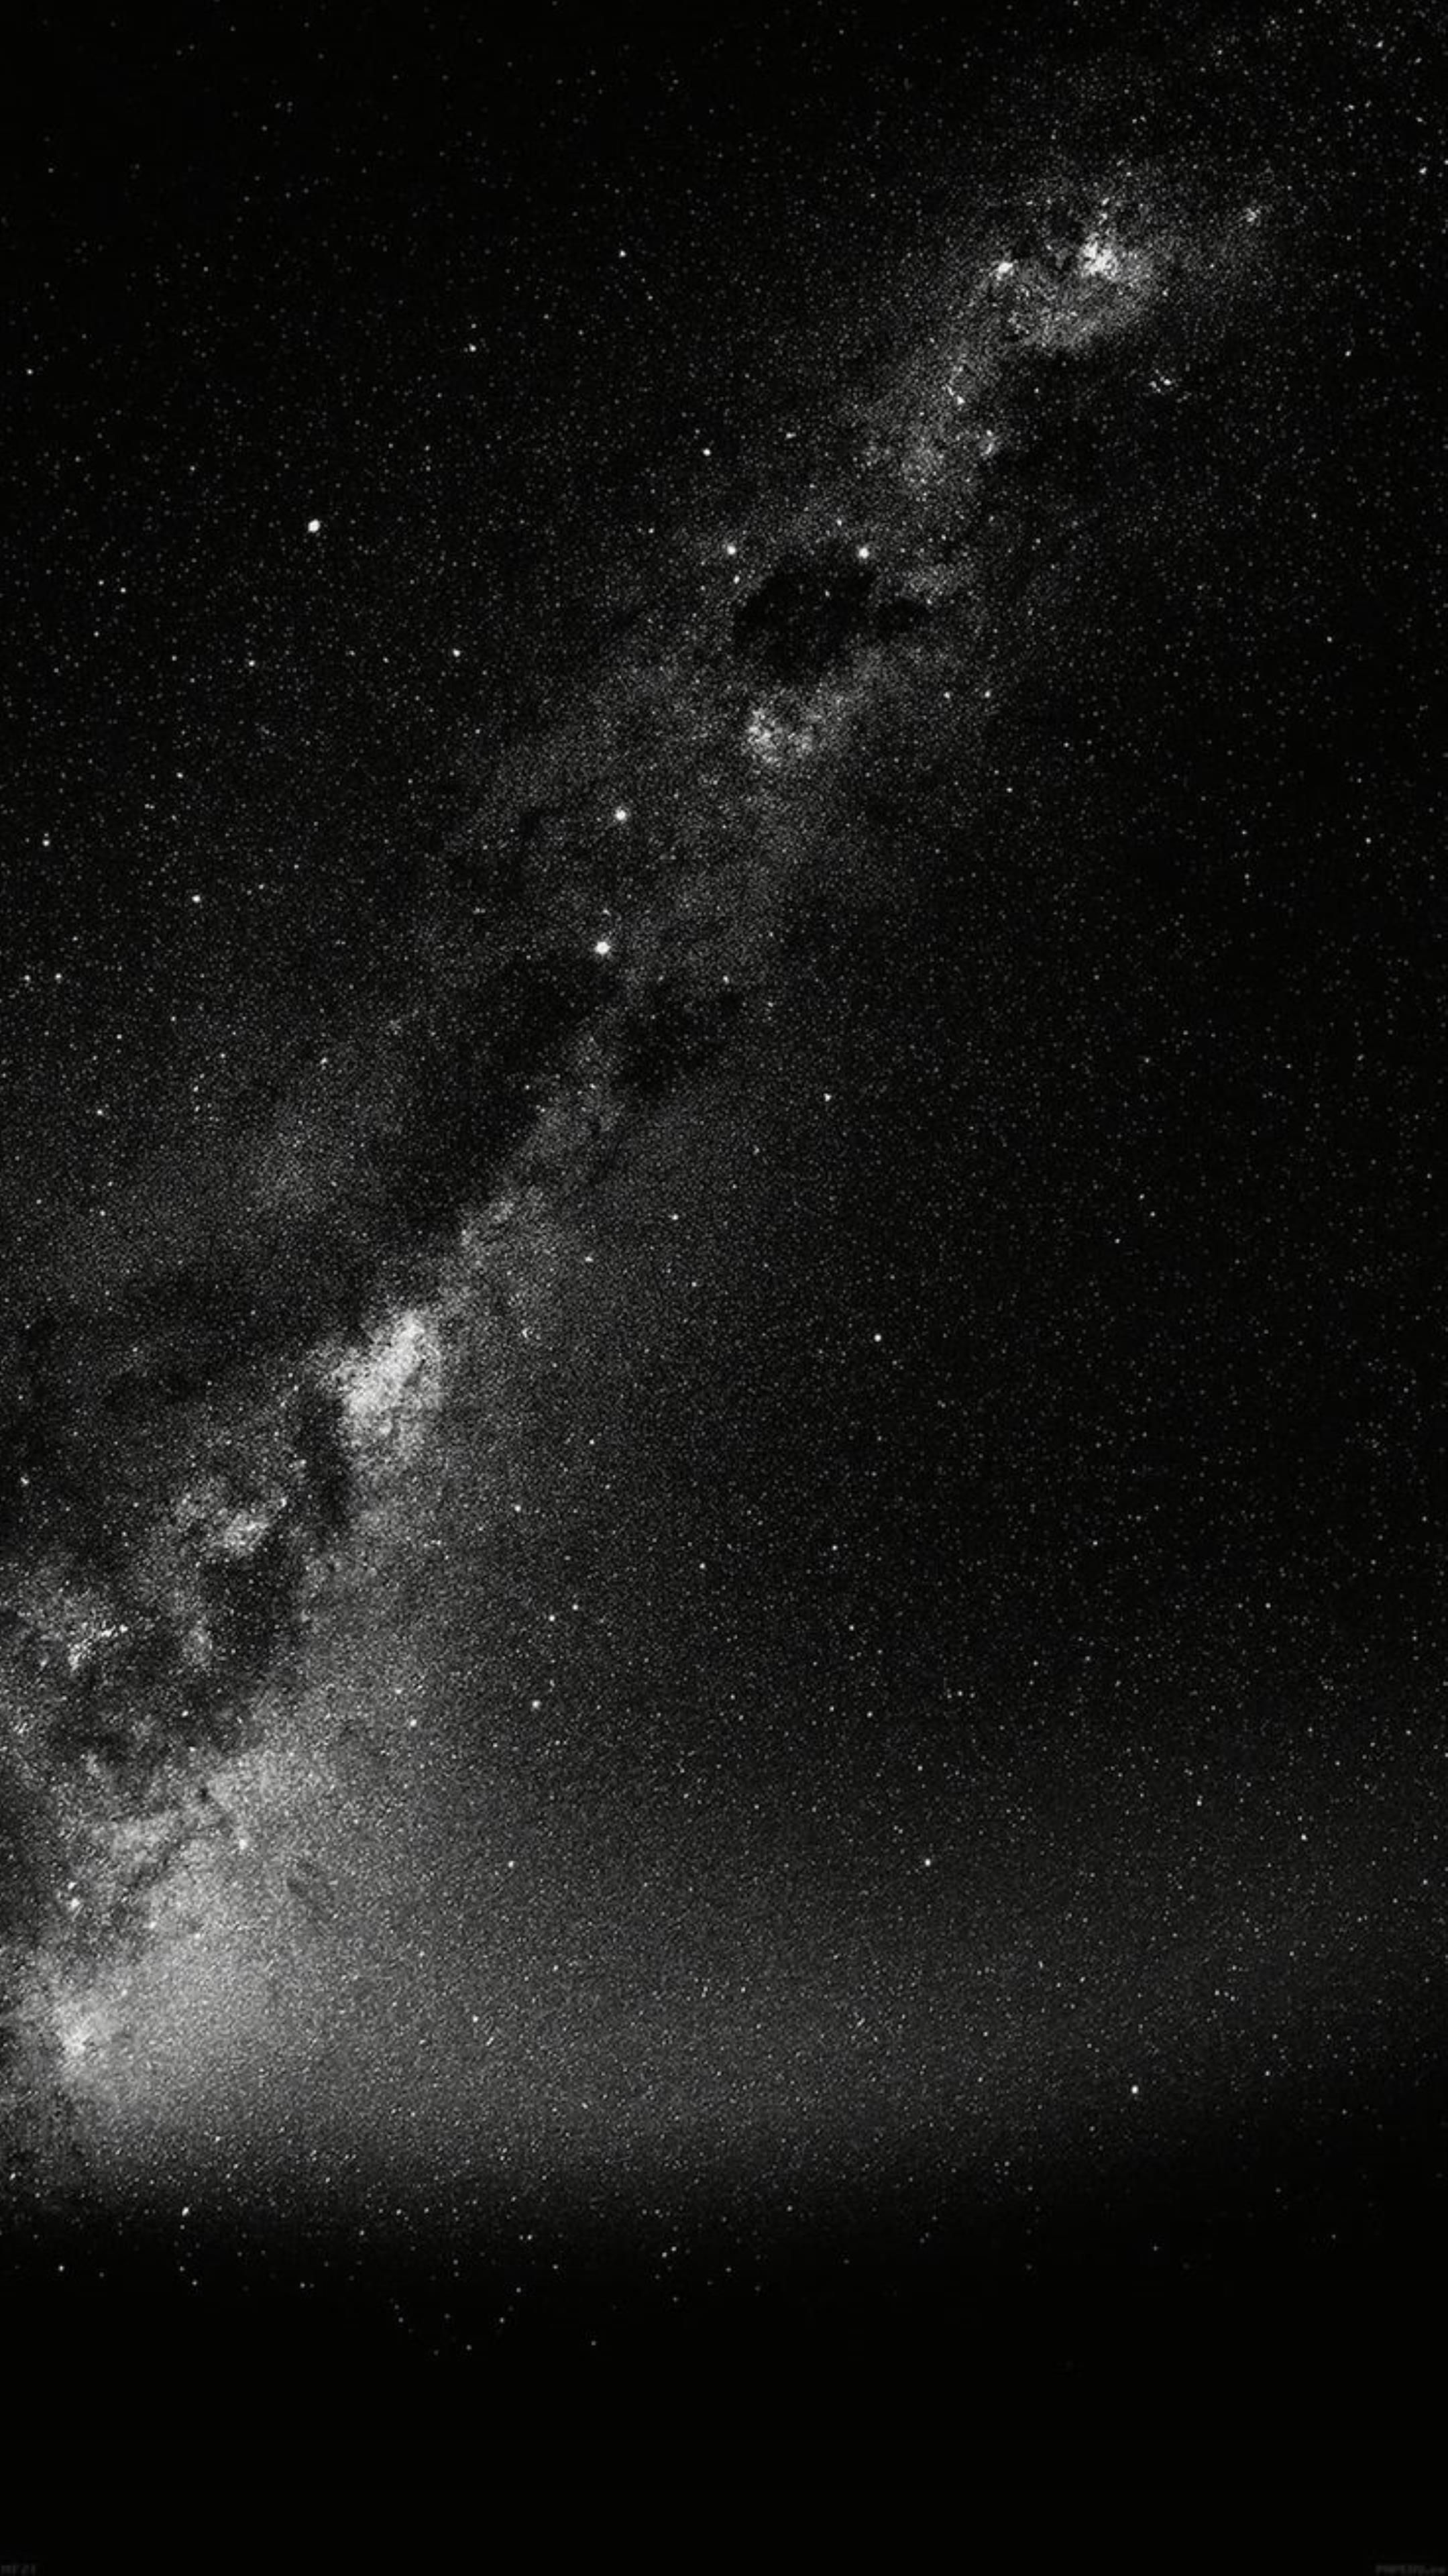 Space 4K Wallpaper 52 Black phone wallpaper, Black